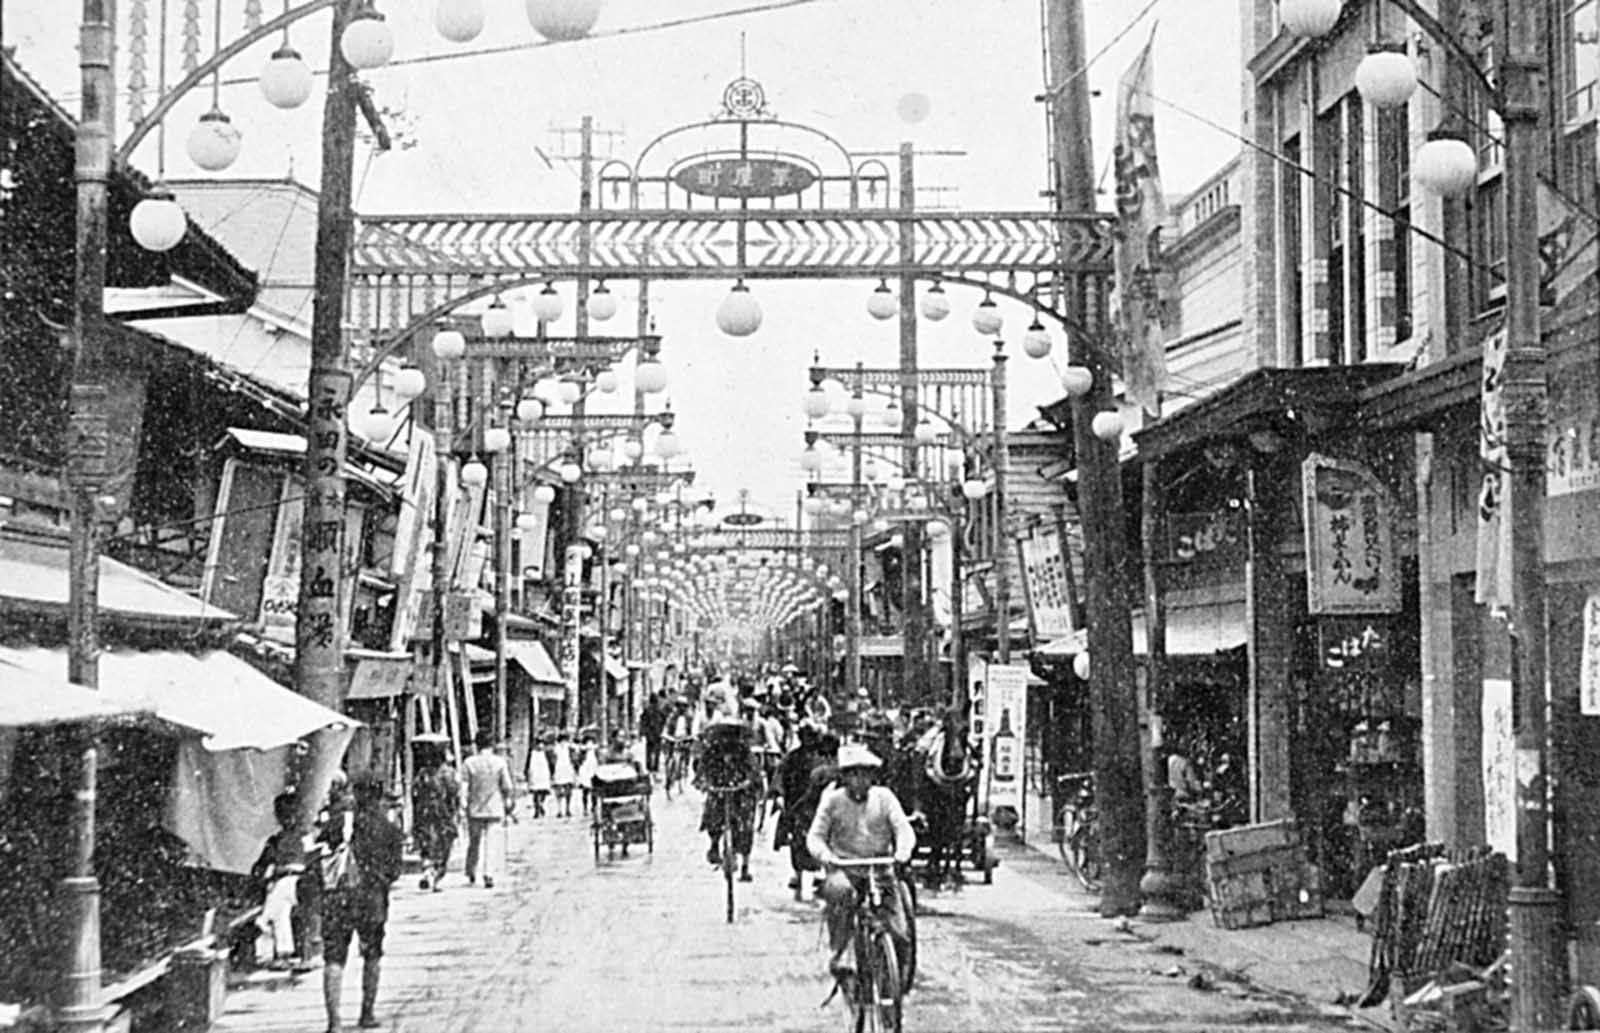 A pre-war photograph of Hiroshima's vibrant downtown shopping district near the center of town, facing east. Only rubble and a few utility poles remained after the nuclear explosion and resultant fires.